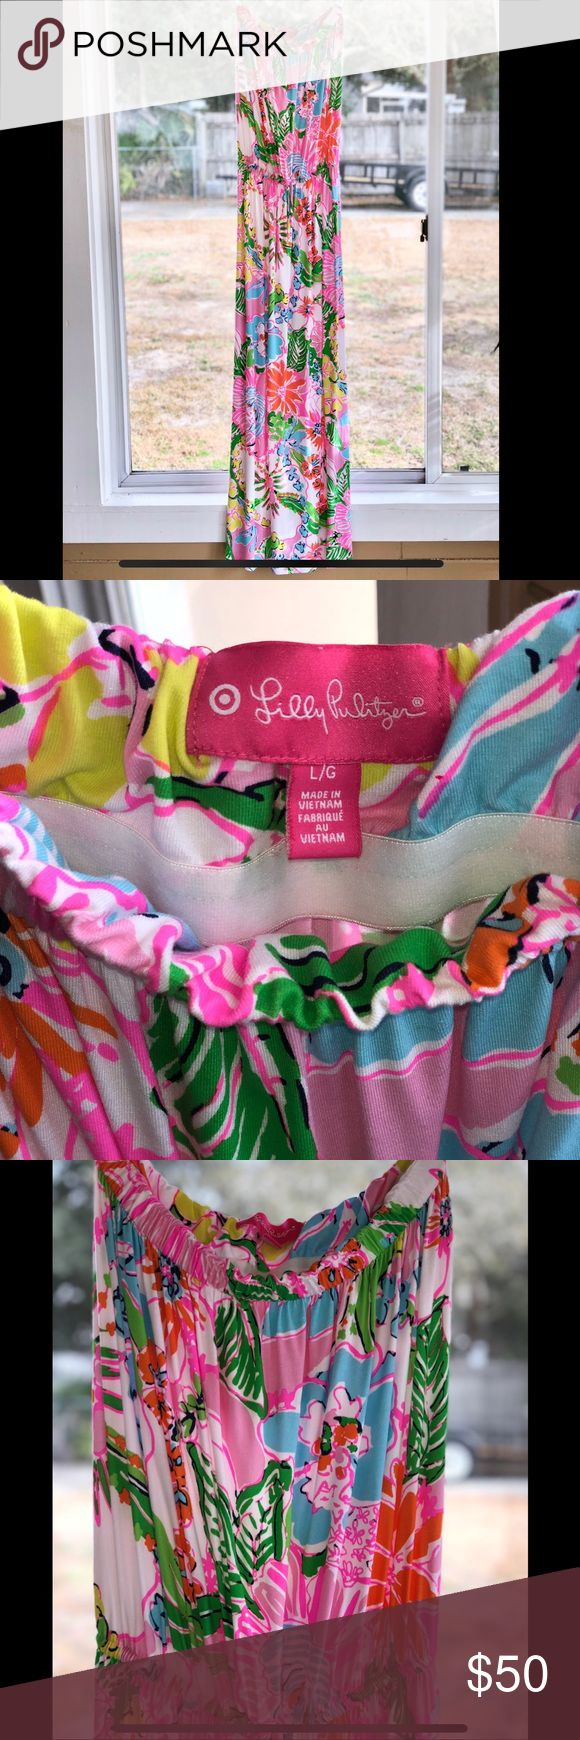 👗 Lilly Pulitzer for Target Maxi 👗 Get ready for springtime with this colorful Lilly Pulitzer Maxi Dress from Target.  The Dress is so comfy and features a built in bra.  Grab your sandals, Sunglasses, large hat while slipping into this Maxi and you will be ready for some fun and feel vibrant. Lilly Pulitzer for Target Dresses Maxi